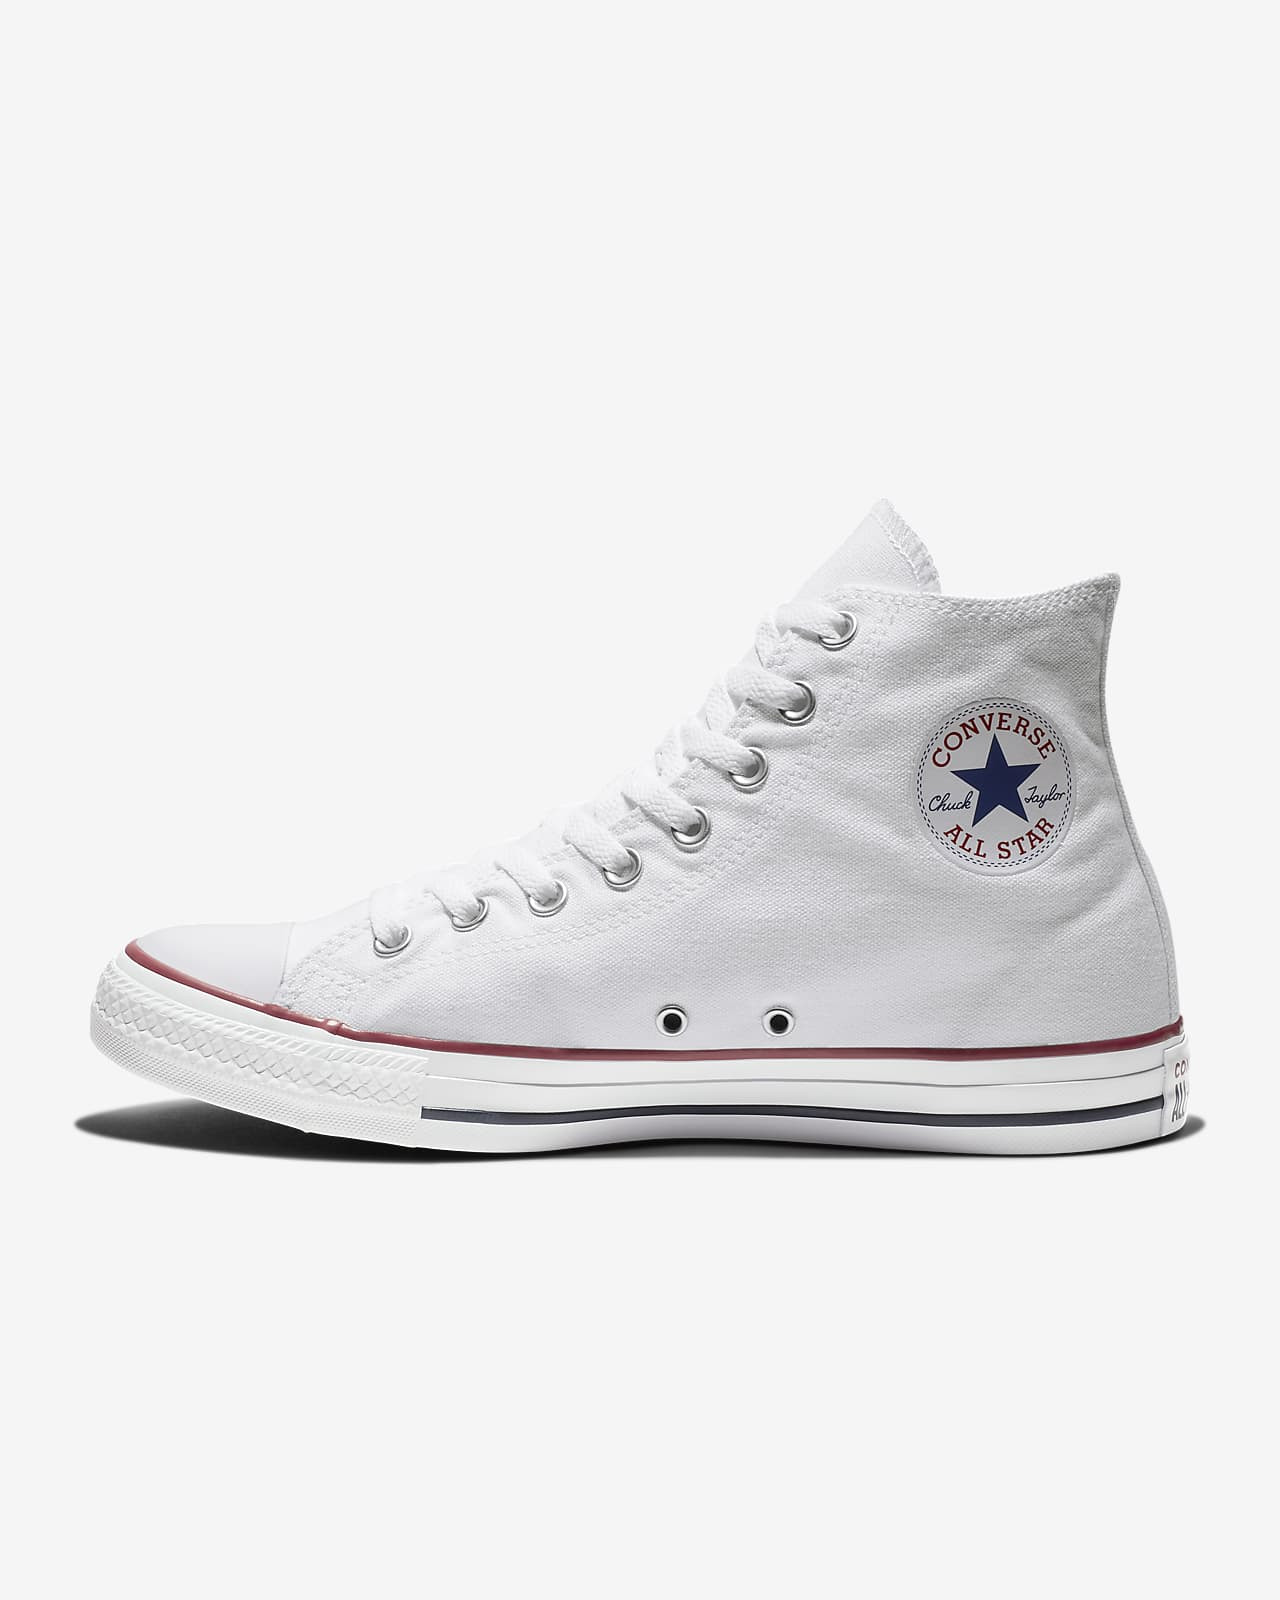 Telemacos malicioso Superposición  Converse Chuck Taylor All Star High Top Unisex Shoe. Nike.com